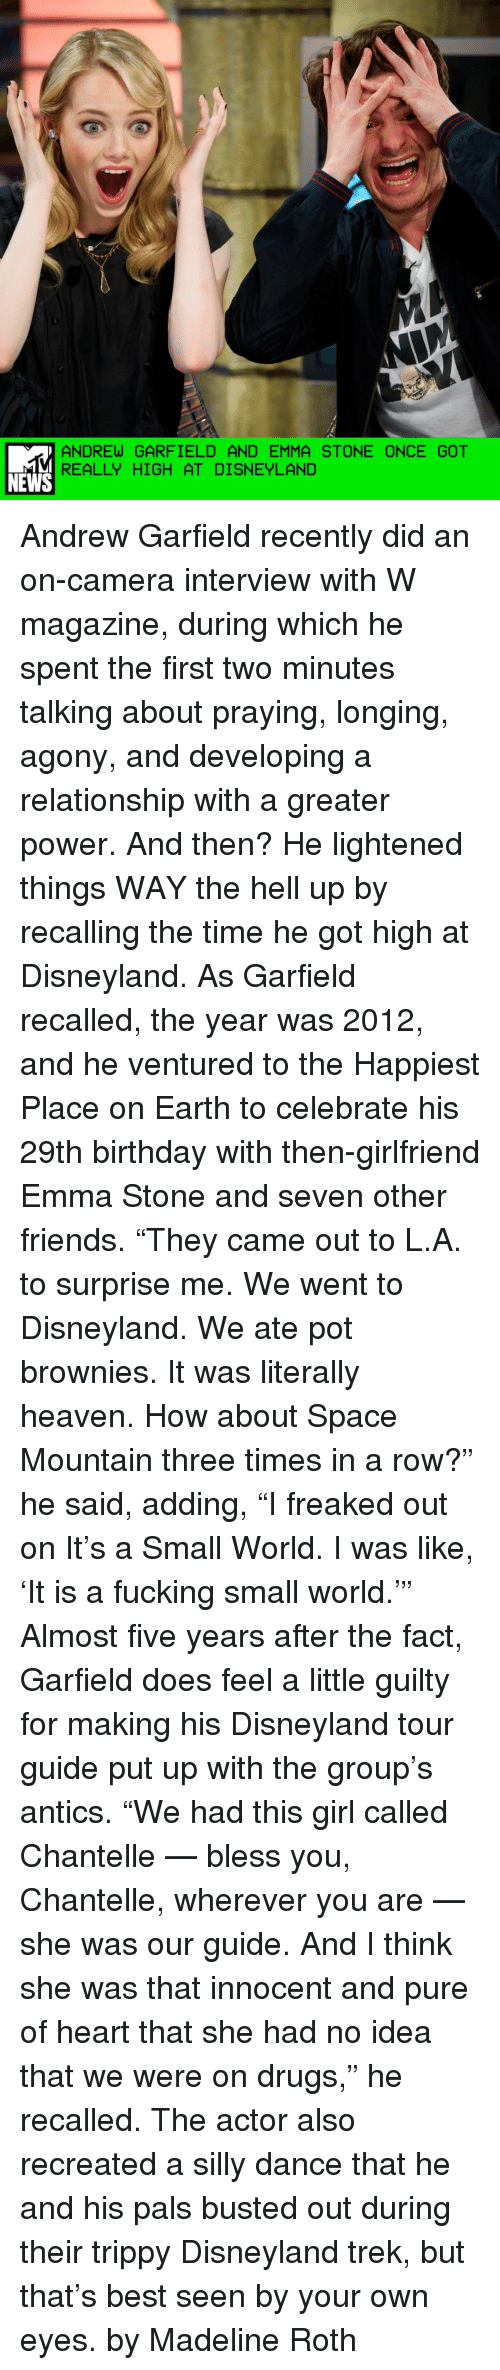 "Trippiness: ANDREW GARFIELD AND EMMA STONE ONCE GOT  REALLY HIGH AT DISNEYLAND  NEWS Andrew Garfield recently did an on-camera interview with W magazine, during which he spent the first two minutes talking about praying, longing, agony, and developing a relationship with a greater power. And then? He lightened things WAY the hell up by recalling the time he got high at Disneyland. As Garfield recalled, the year was 2012, and he ventured to the Happiest Place on Earth to celebrate his 29th birthday with then-girlfriend Emma Stone and seven other friends. ""They came out to L.A. to surprise me. We went to Disneyland. We ate pot brownies. It was literally heaven. How about Space Mountain three times in a row?"" he said, adding, ""I freaked out on It's a Small World. I was like, 'It is a fucking small world.'"" Almost five years after the fact, Garfield does feel a little guilty for making his Disneyland tour guide put up with the group's antics. ""We had this girl called Chantelle — bless you, Chantelle, wherever you are — she was our guide. And I think she was that innocent and pure of heart that she had no idea that we were on drugs,"" he recalled. The actor also recreated a silly dance that he and his pals busted out during their trippy Disneyland trek, but that's best seen by your own eyes. by Madeline Roth"